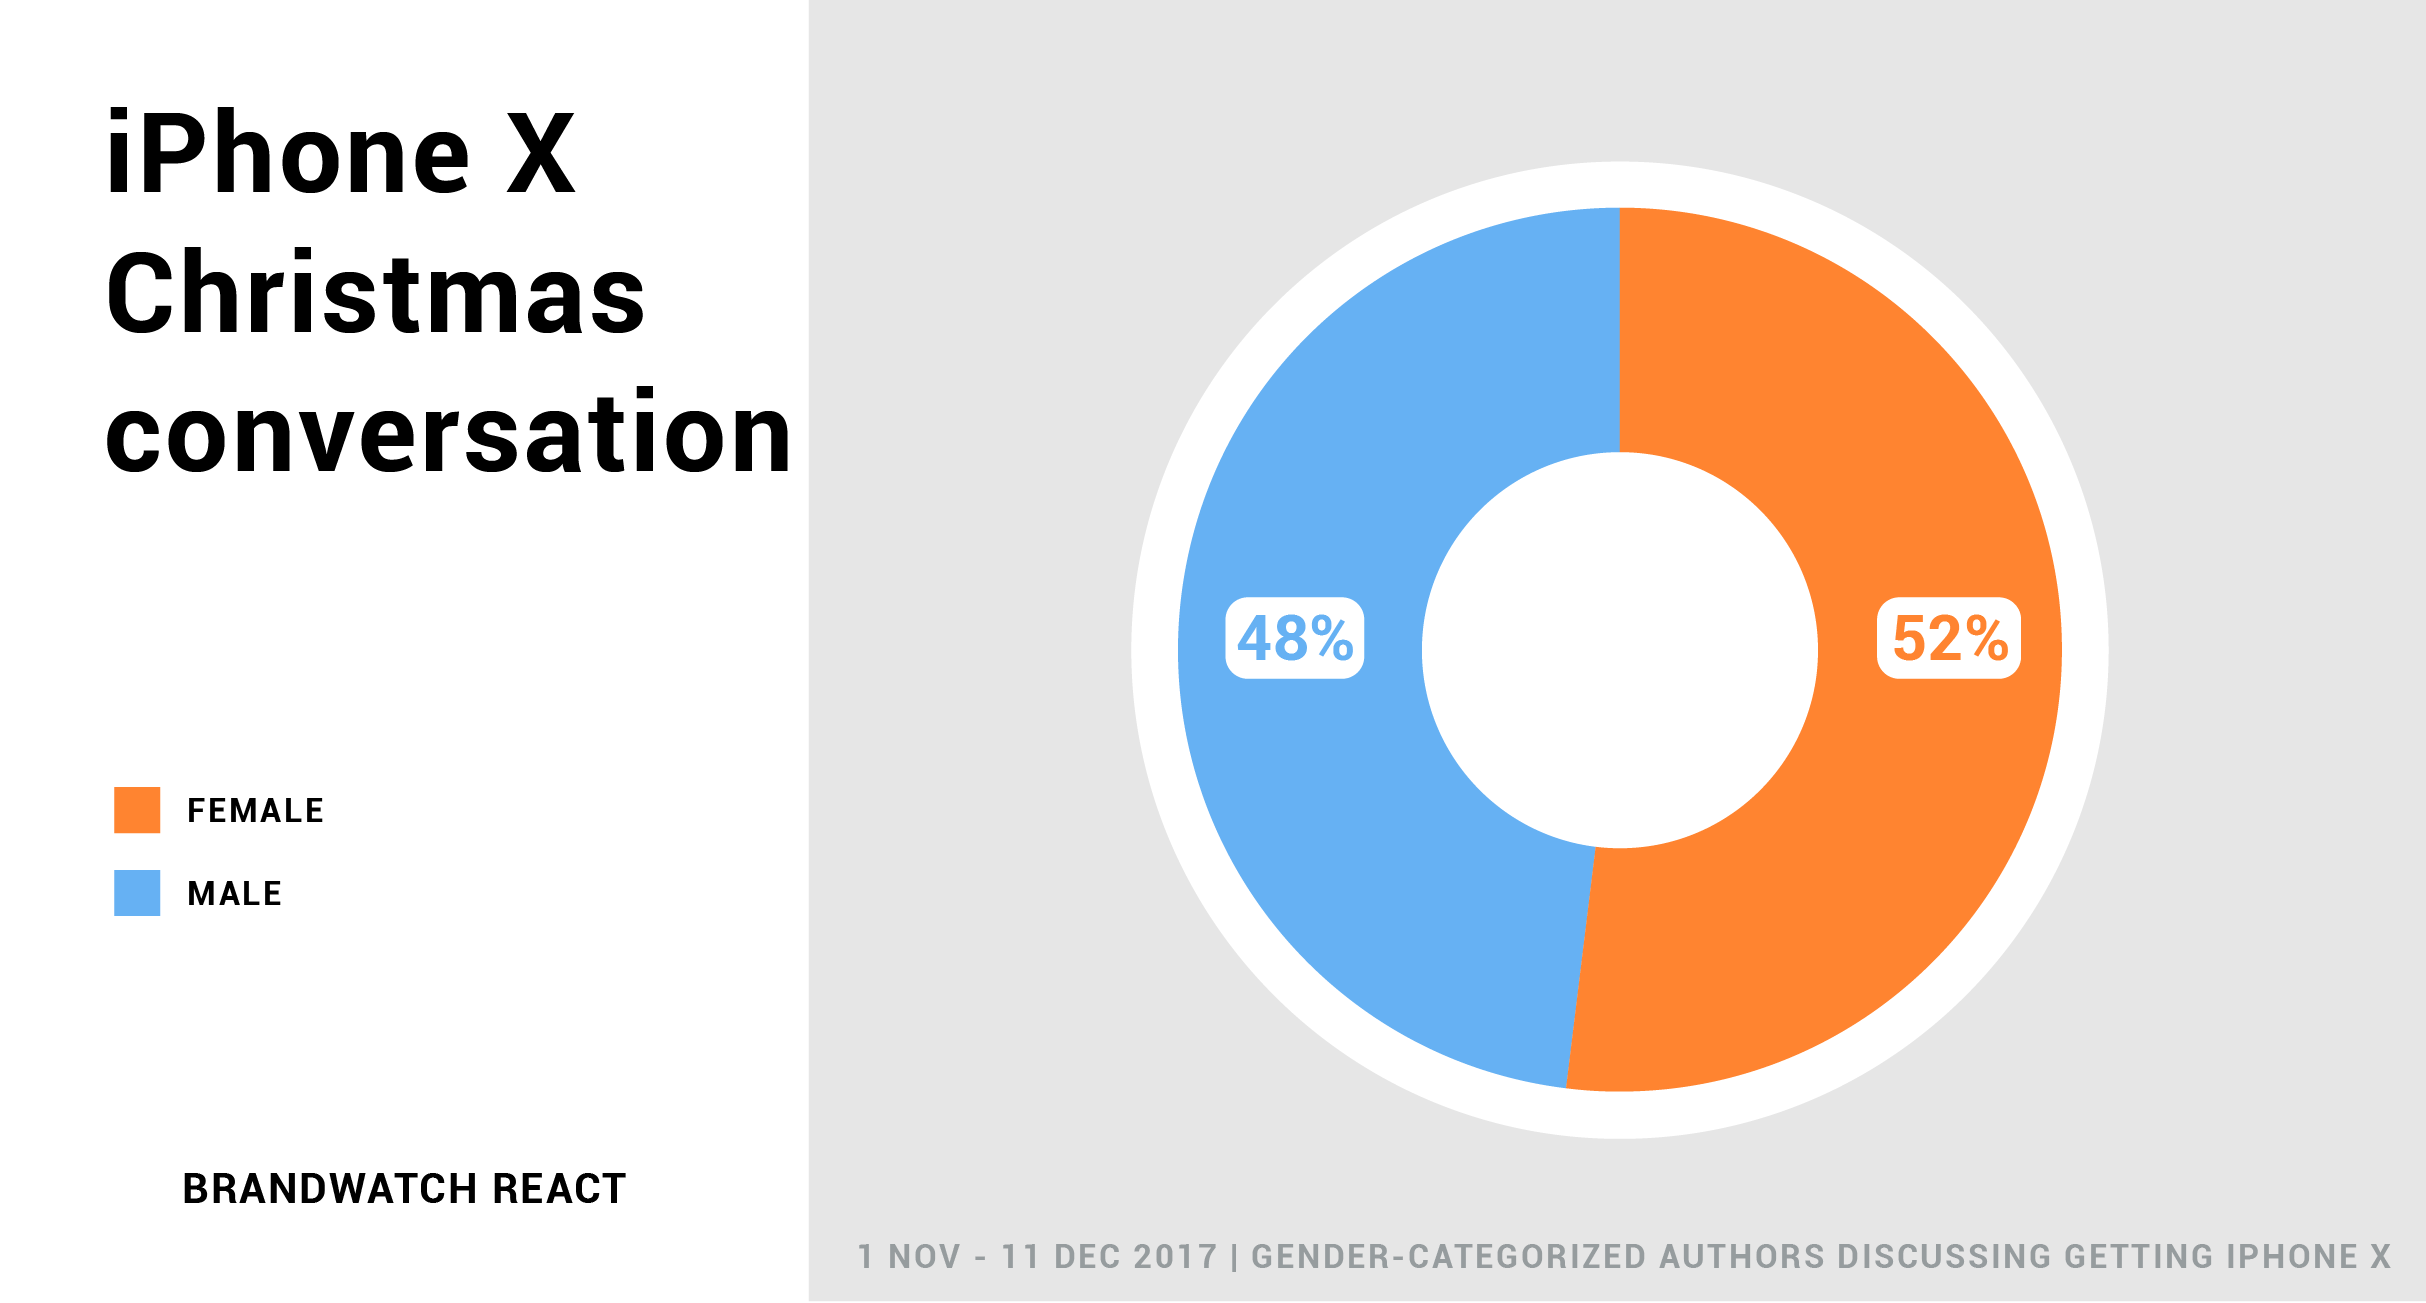 Pie chart shows that women are out-tweeting men by 4% in the iPhone X intent-to-purchase discussion